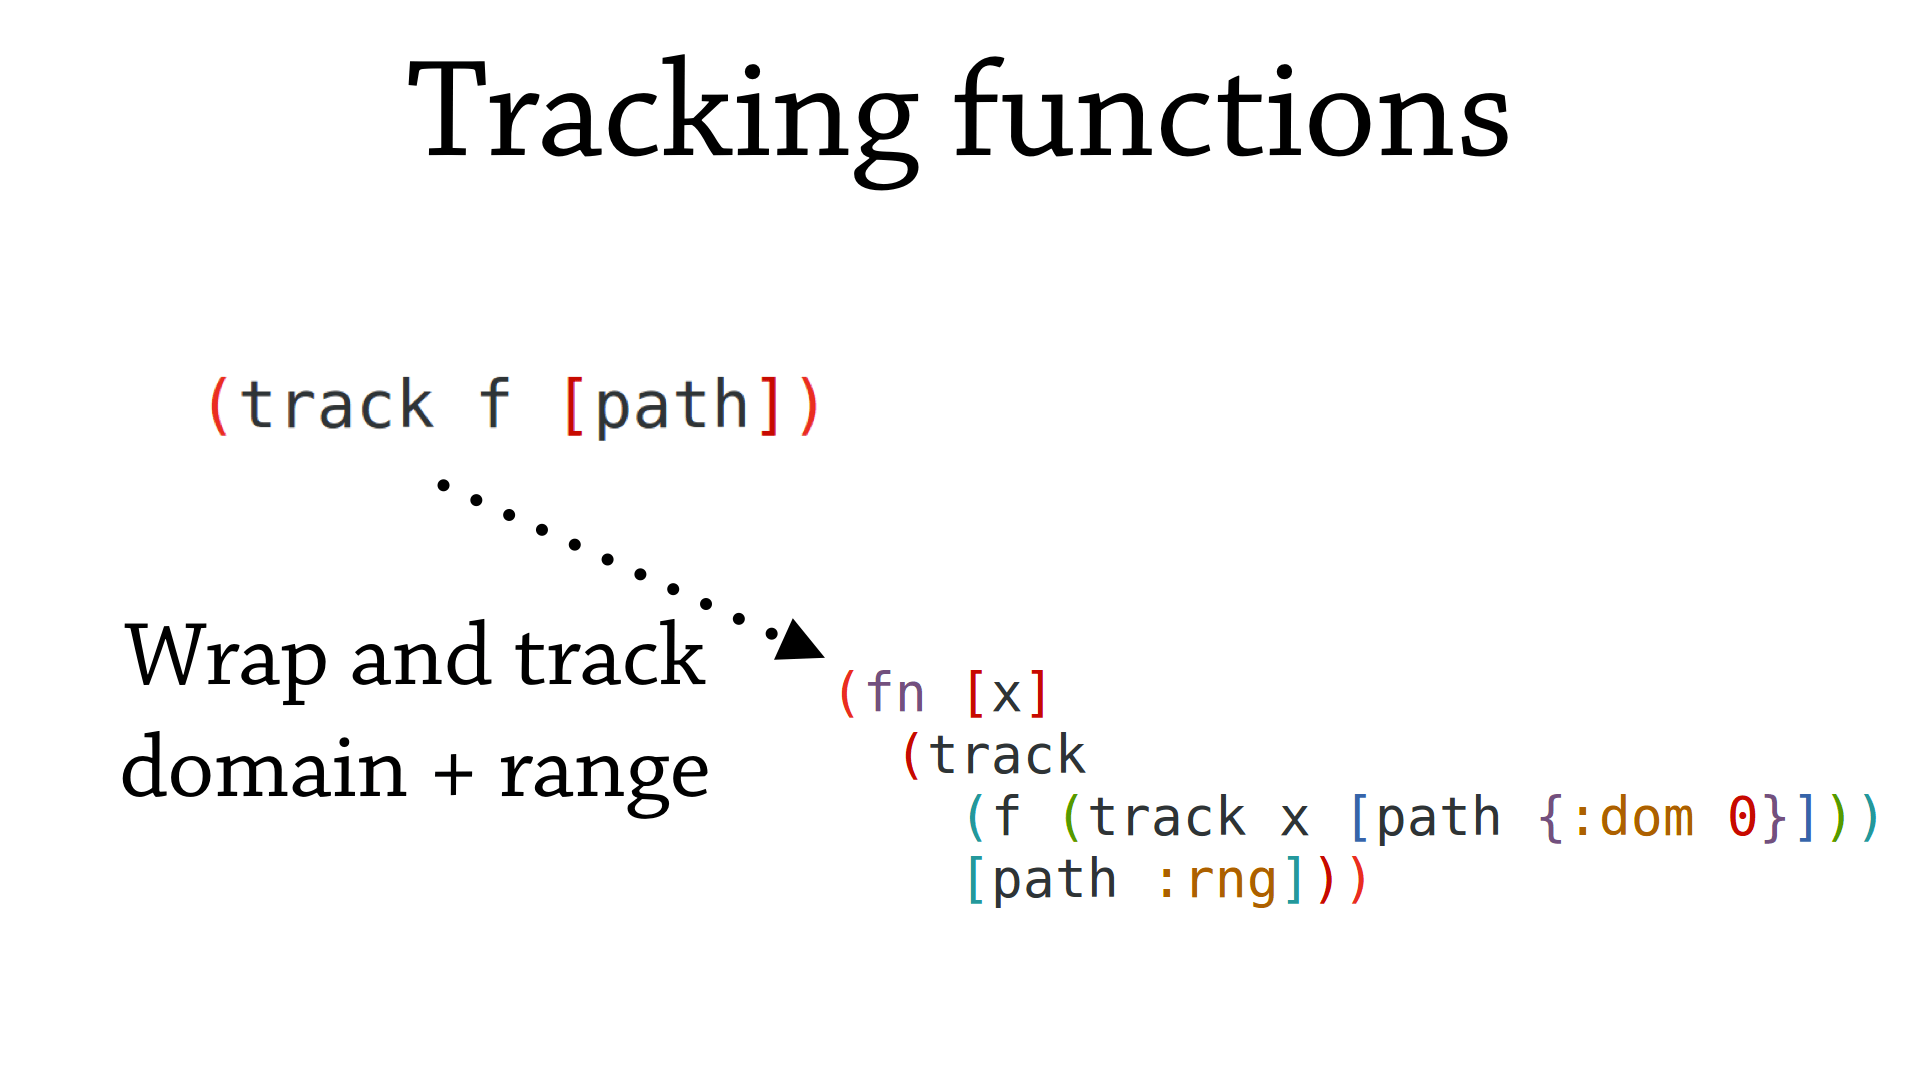 Tracking a function invocation